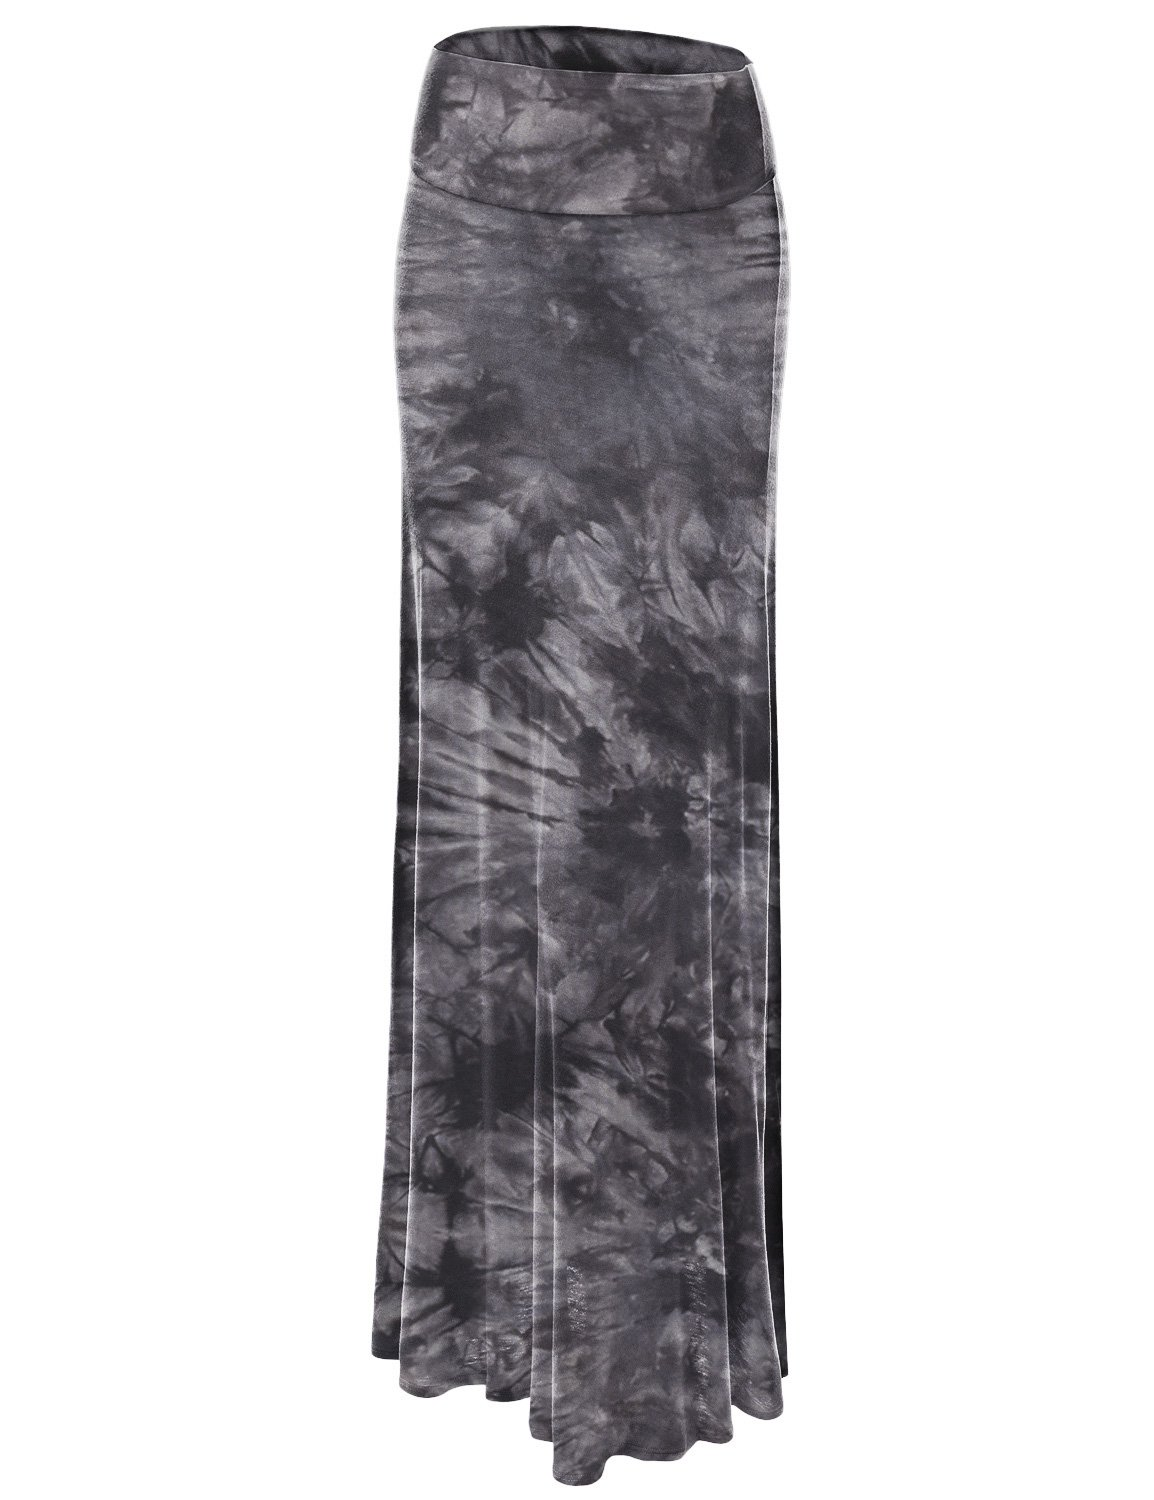 WB1058 Womens Tie Dye Fold Over Maxi Skirt S BLACK